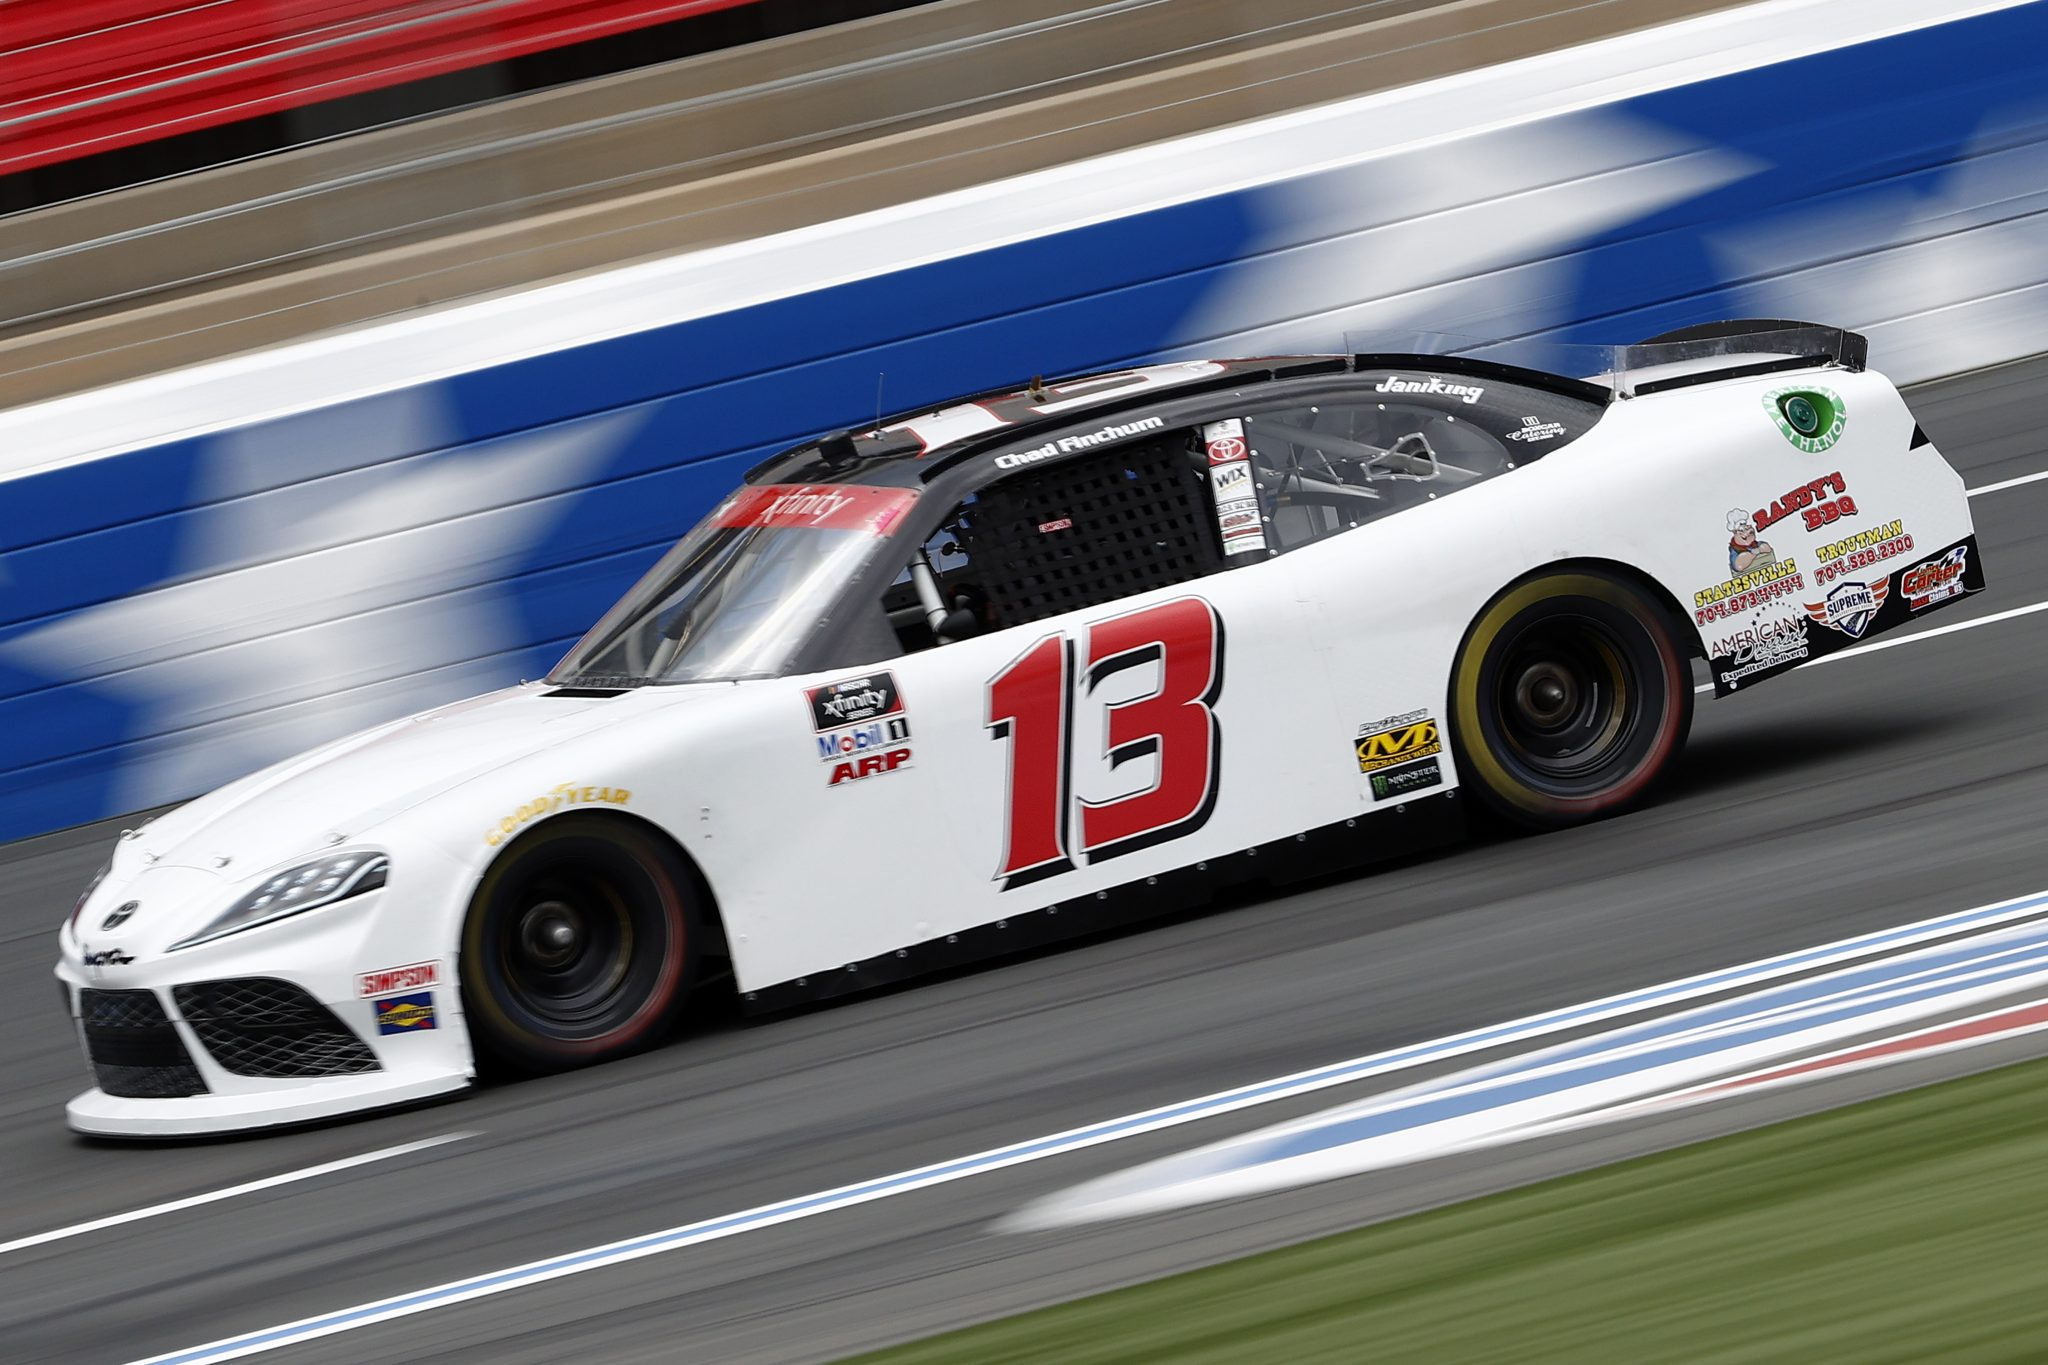 CONCORD, NORTH CAROLINA - MAY 28: Chad Finchum, driver of the #13 CrashClaimsR.US Toyota, drives during practice for the NASCAR Xfinity Series Alsco Uniforms 300 at Charlotte Motor Speedway on May 28, 2021 in Concord, North Carolina. (Photo by Maddie Meyer/Getty Images)   Getty Images